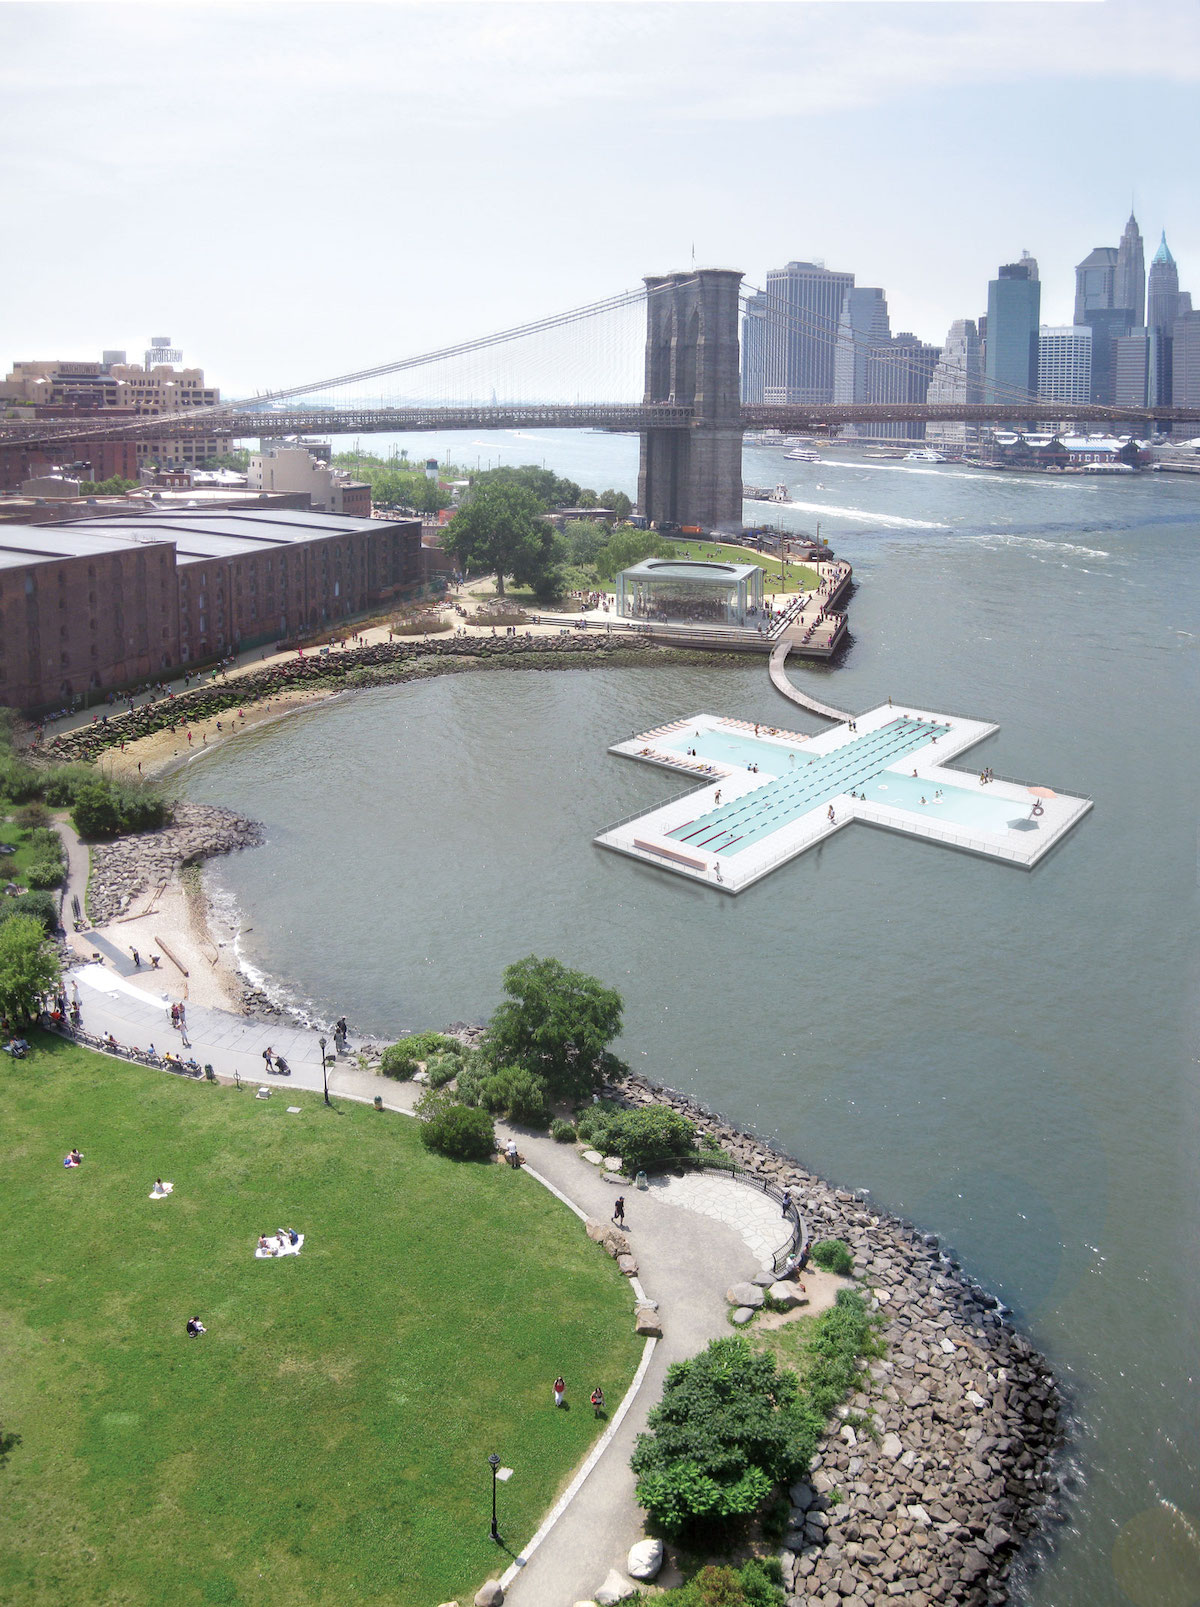 Rendering of + POOL on New York City's East River